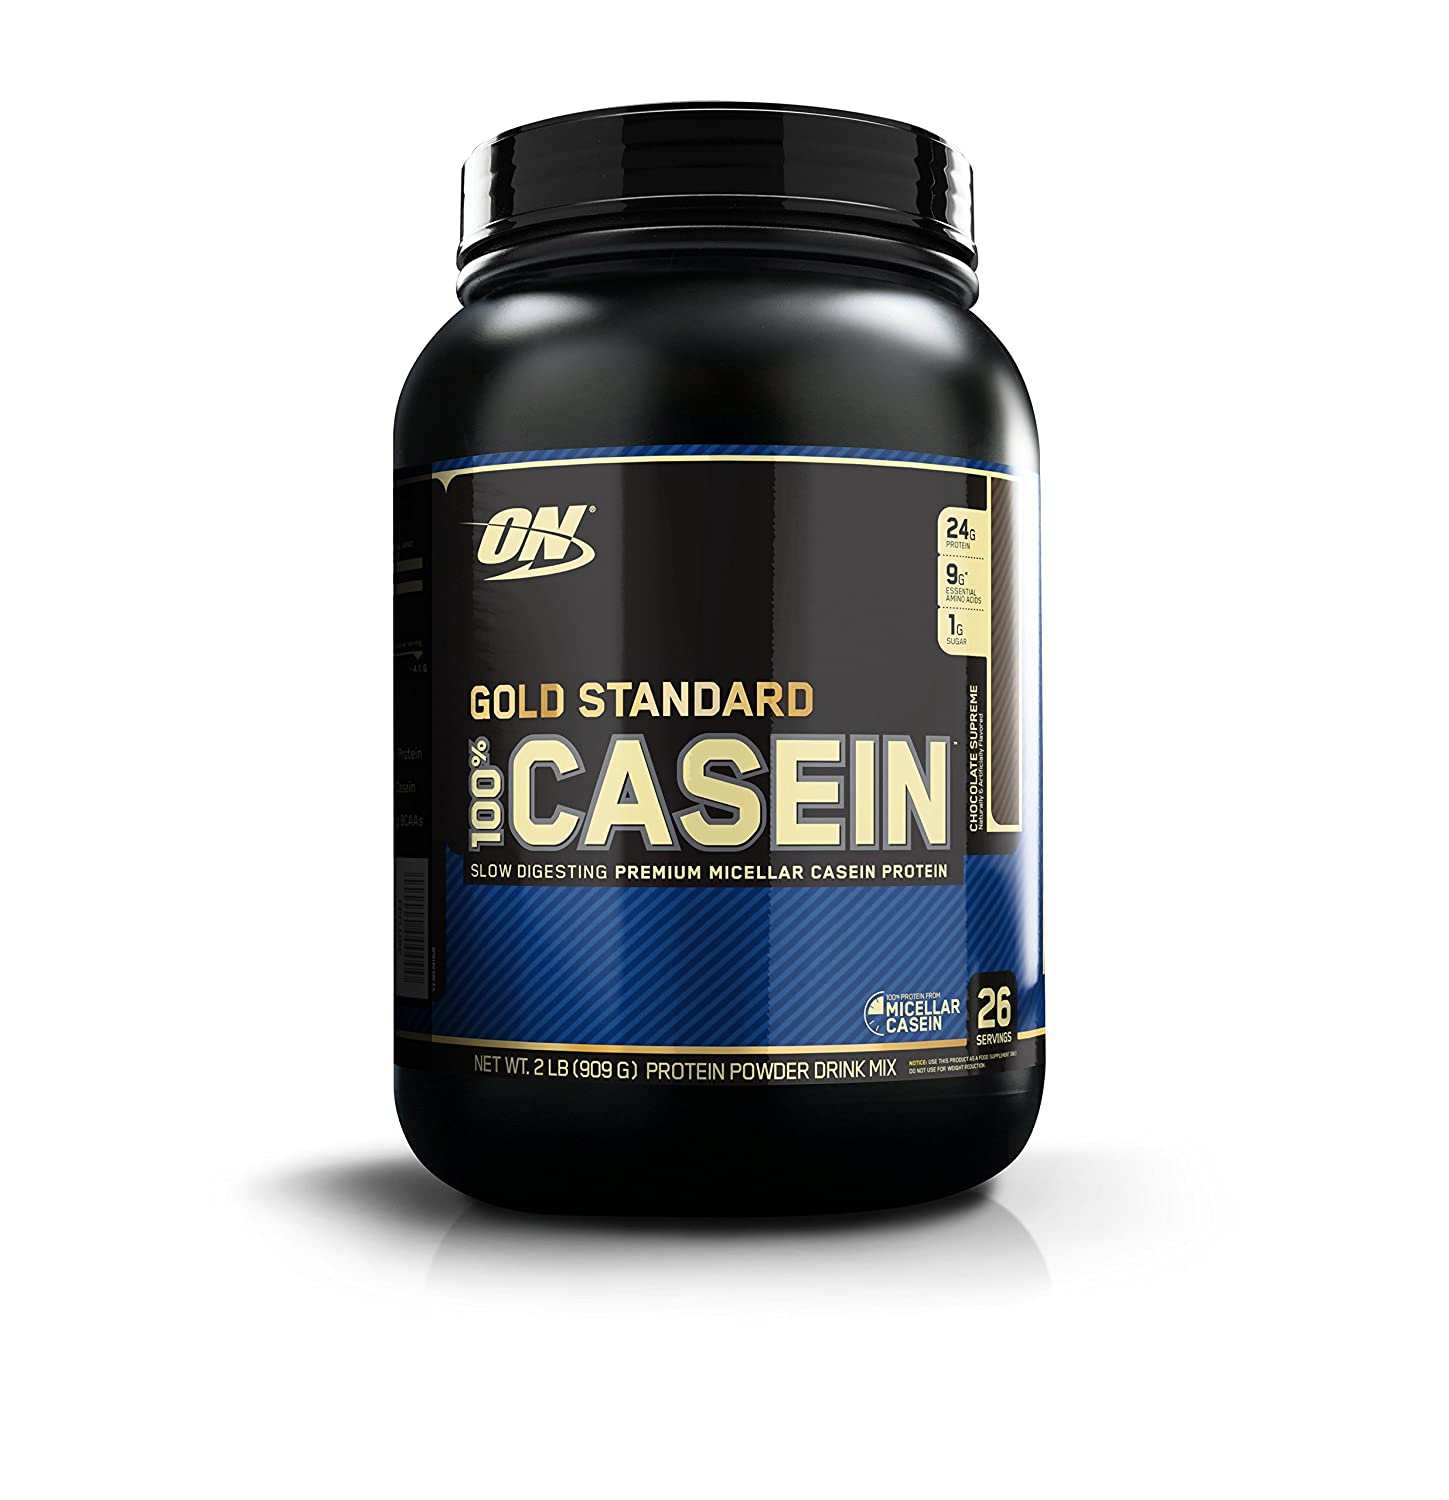 OPTIMUM NUTRITION GOLD STANDARD 100 Micellar Casein Protein Powder, Slow Digesting, Helps Keep You Full, Overnight Muscle Recovery, Chocolate Supreme, 0.91 kg